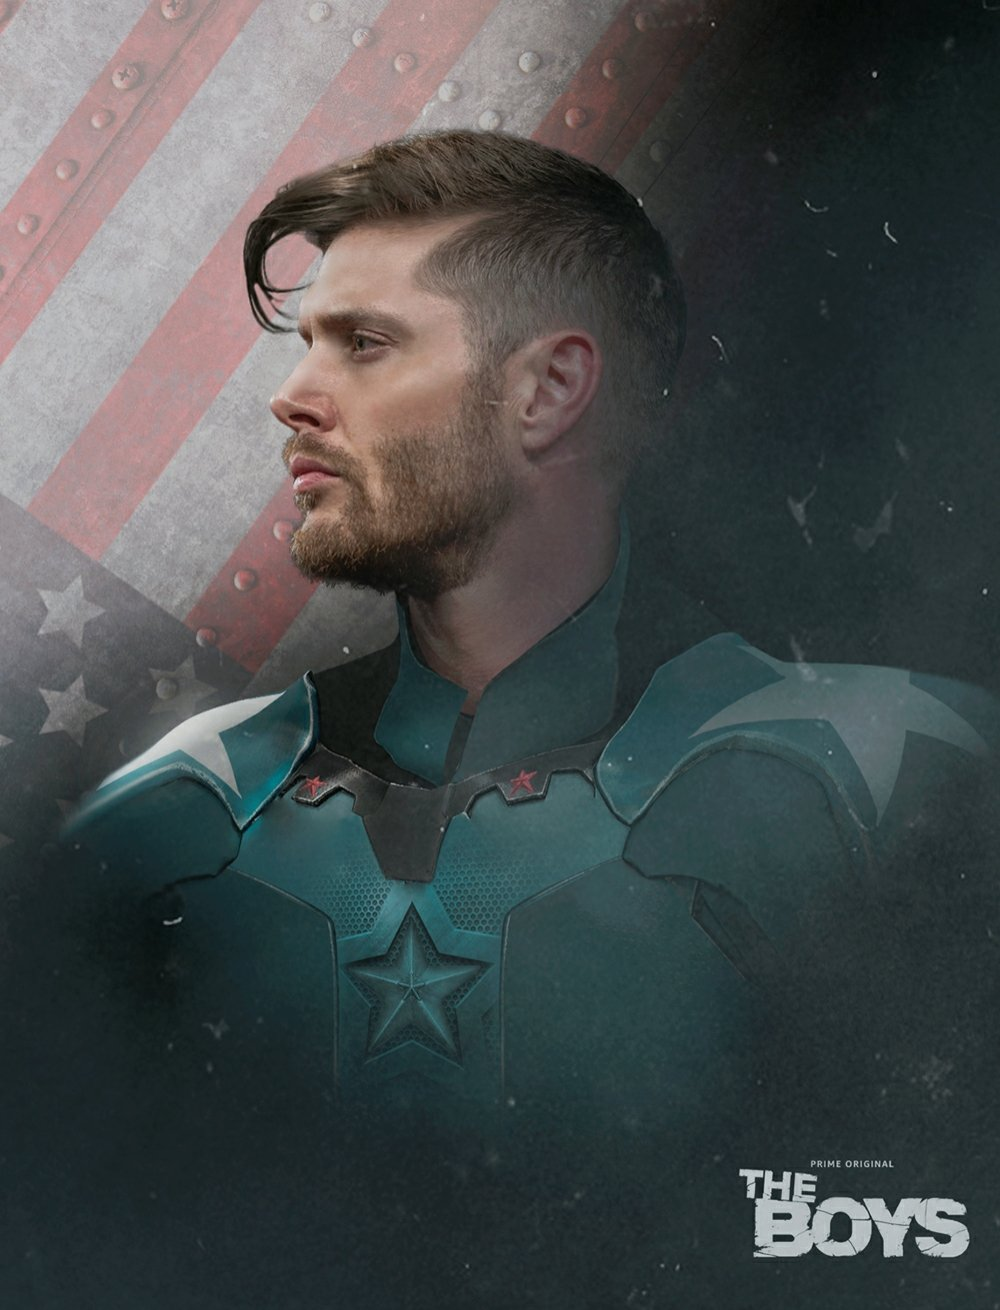 Here S How Jensen Ackles Could Look As Soldier Boy In The Boys